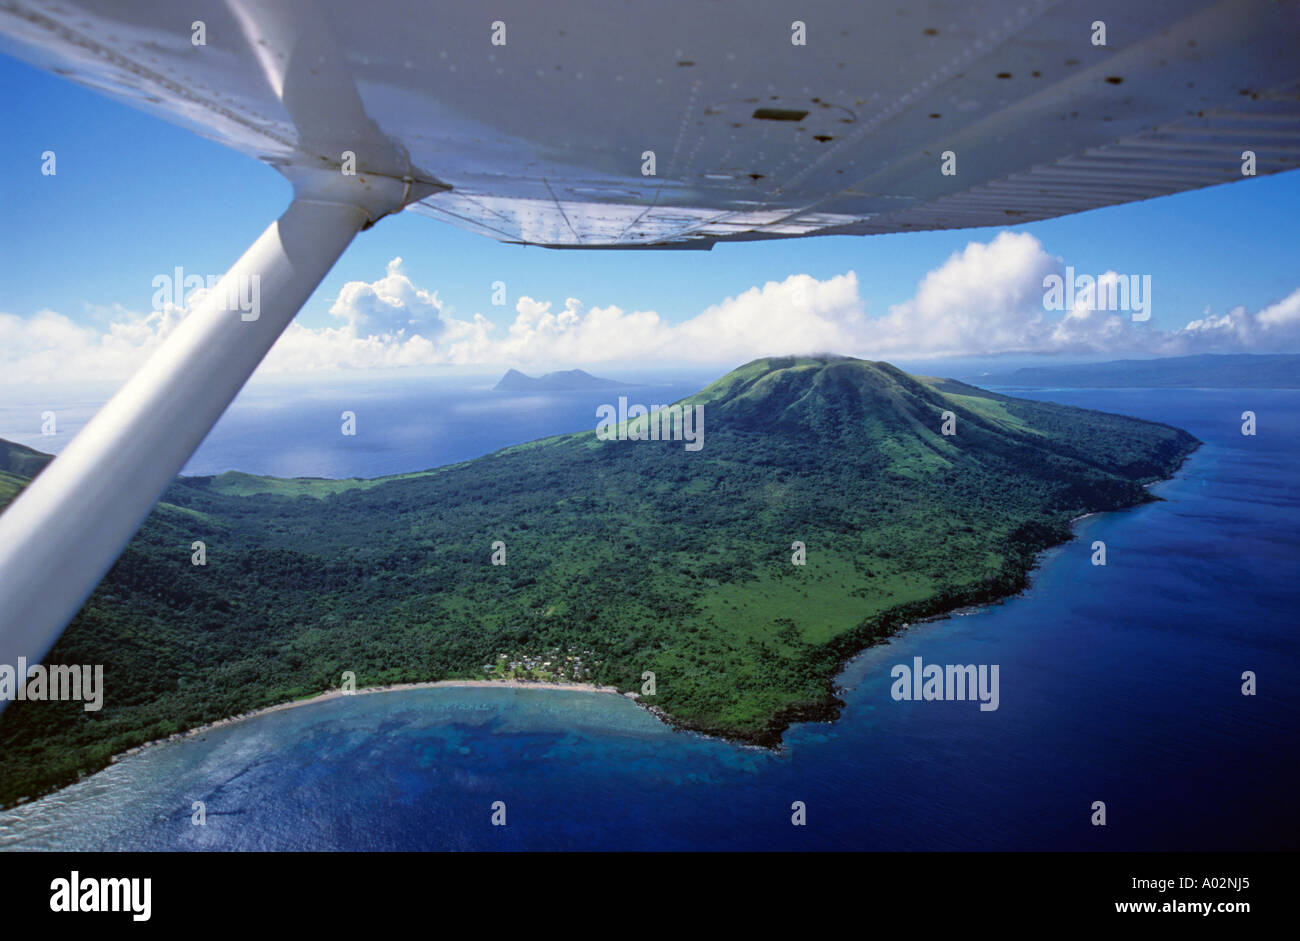 Volcanoes seen from a plane over the island of Efate, Vanuatu, South Pacific Ocean. - Stock Image